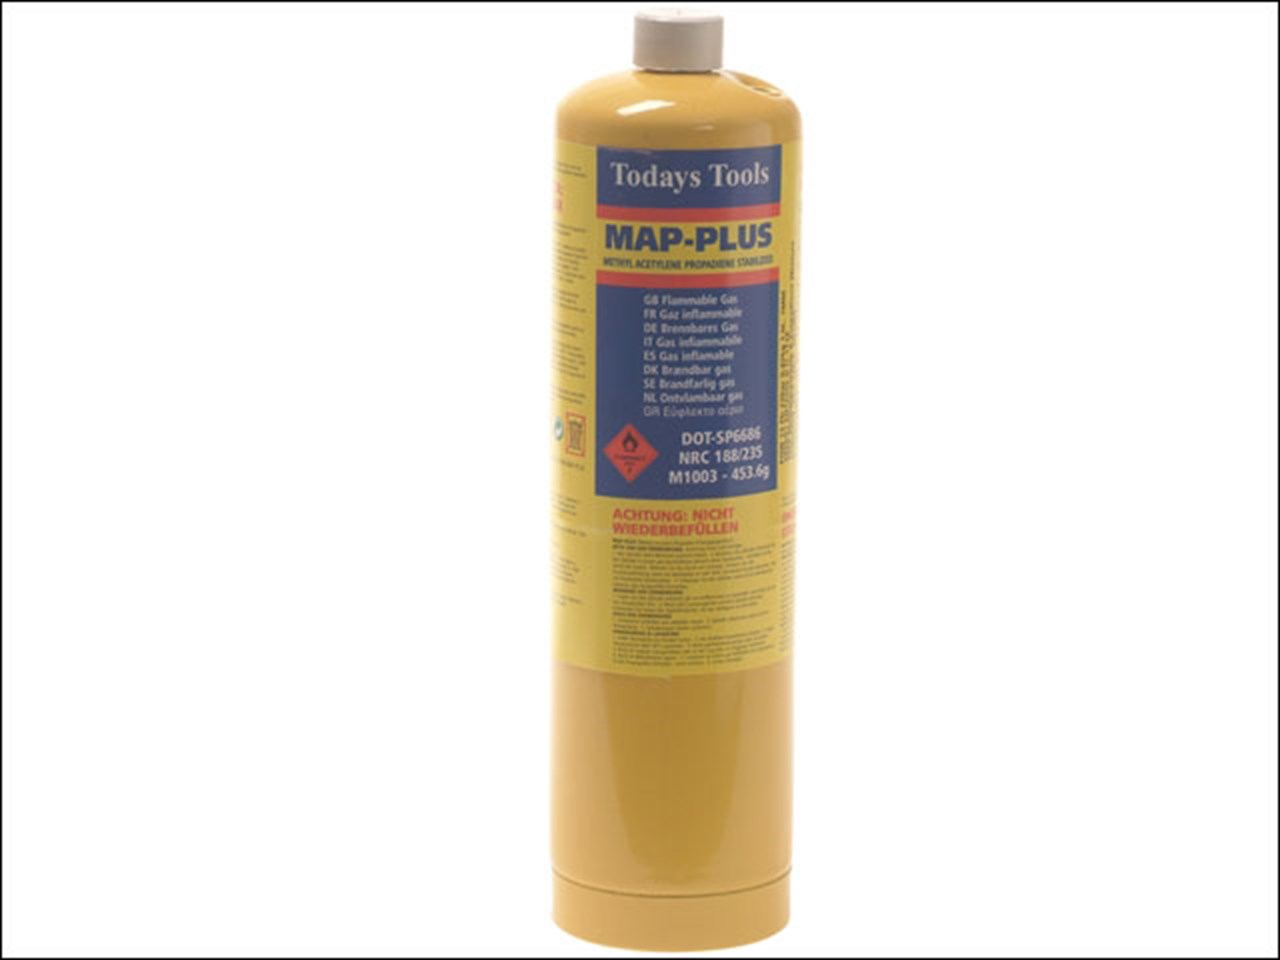 todays tools todmapp yellow map plus gas cylinder 453g